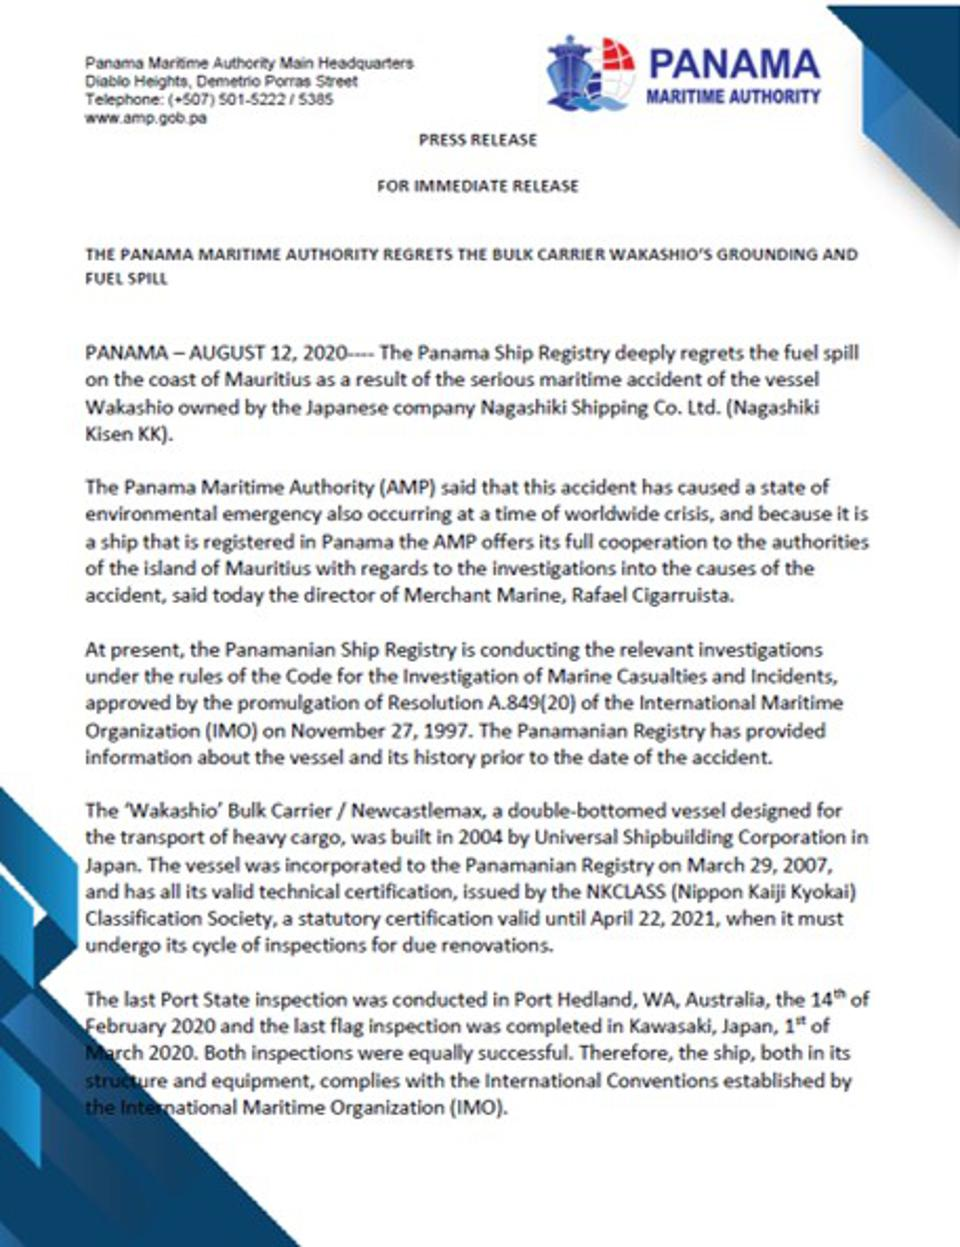 12 August 2020: Press Release by Panama Maritime Authority stating ″Everything went smoothly until July 25, when the ship faced adverse weather conditions near the coast of Mauritius. It was then, necessary to perform various maneuvers to change course due to the state of the sea.″